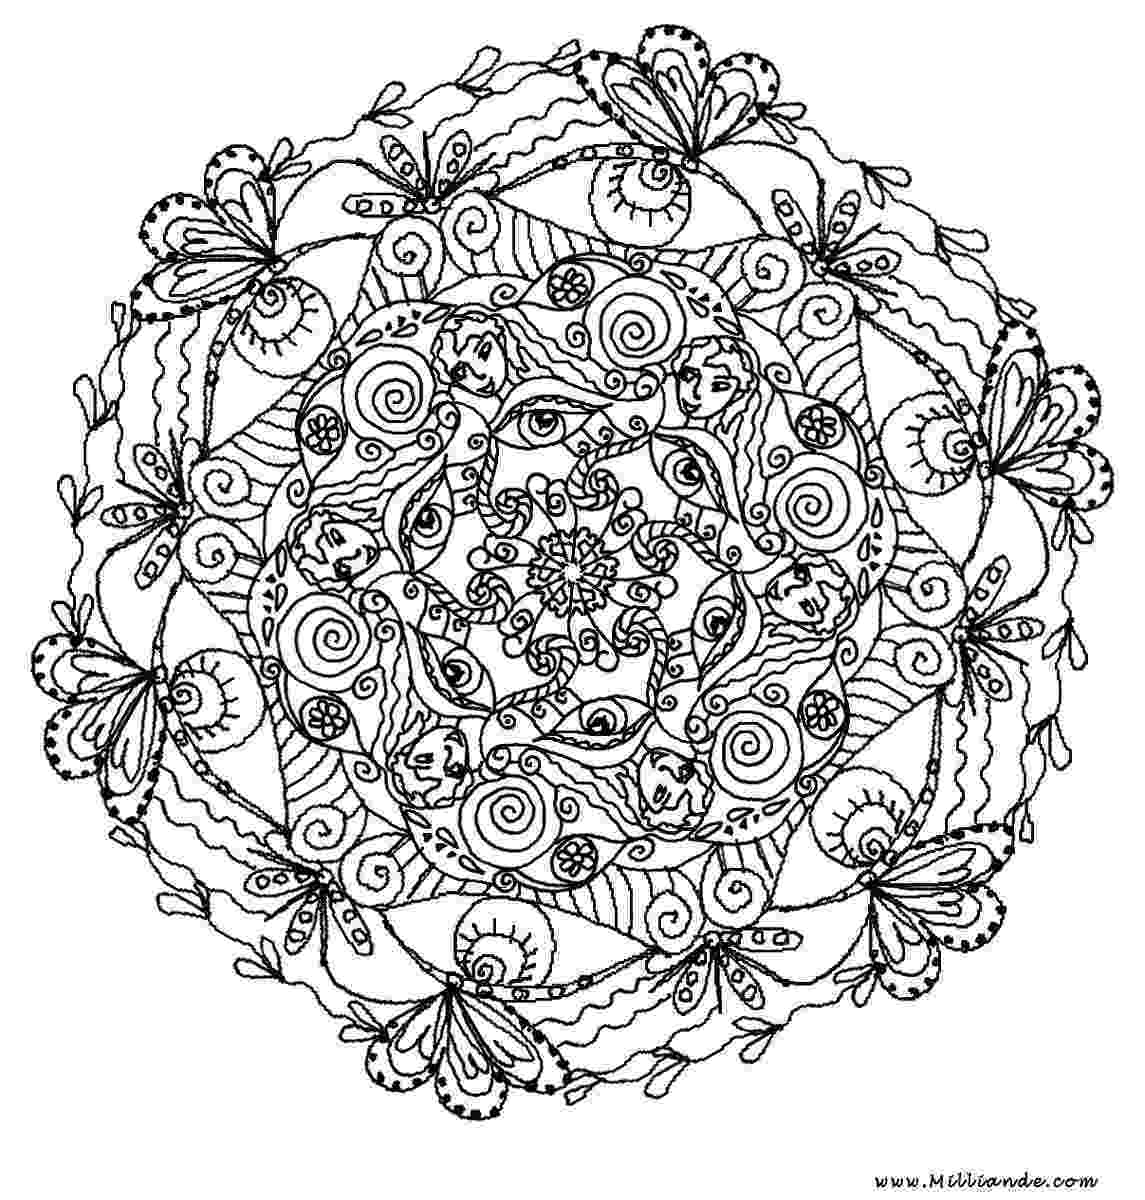 free printable mandala coloring sheets beautiful free mandala coloring pages skip to my lou coloring mandala printable sheets free